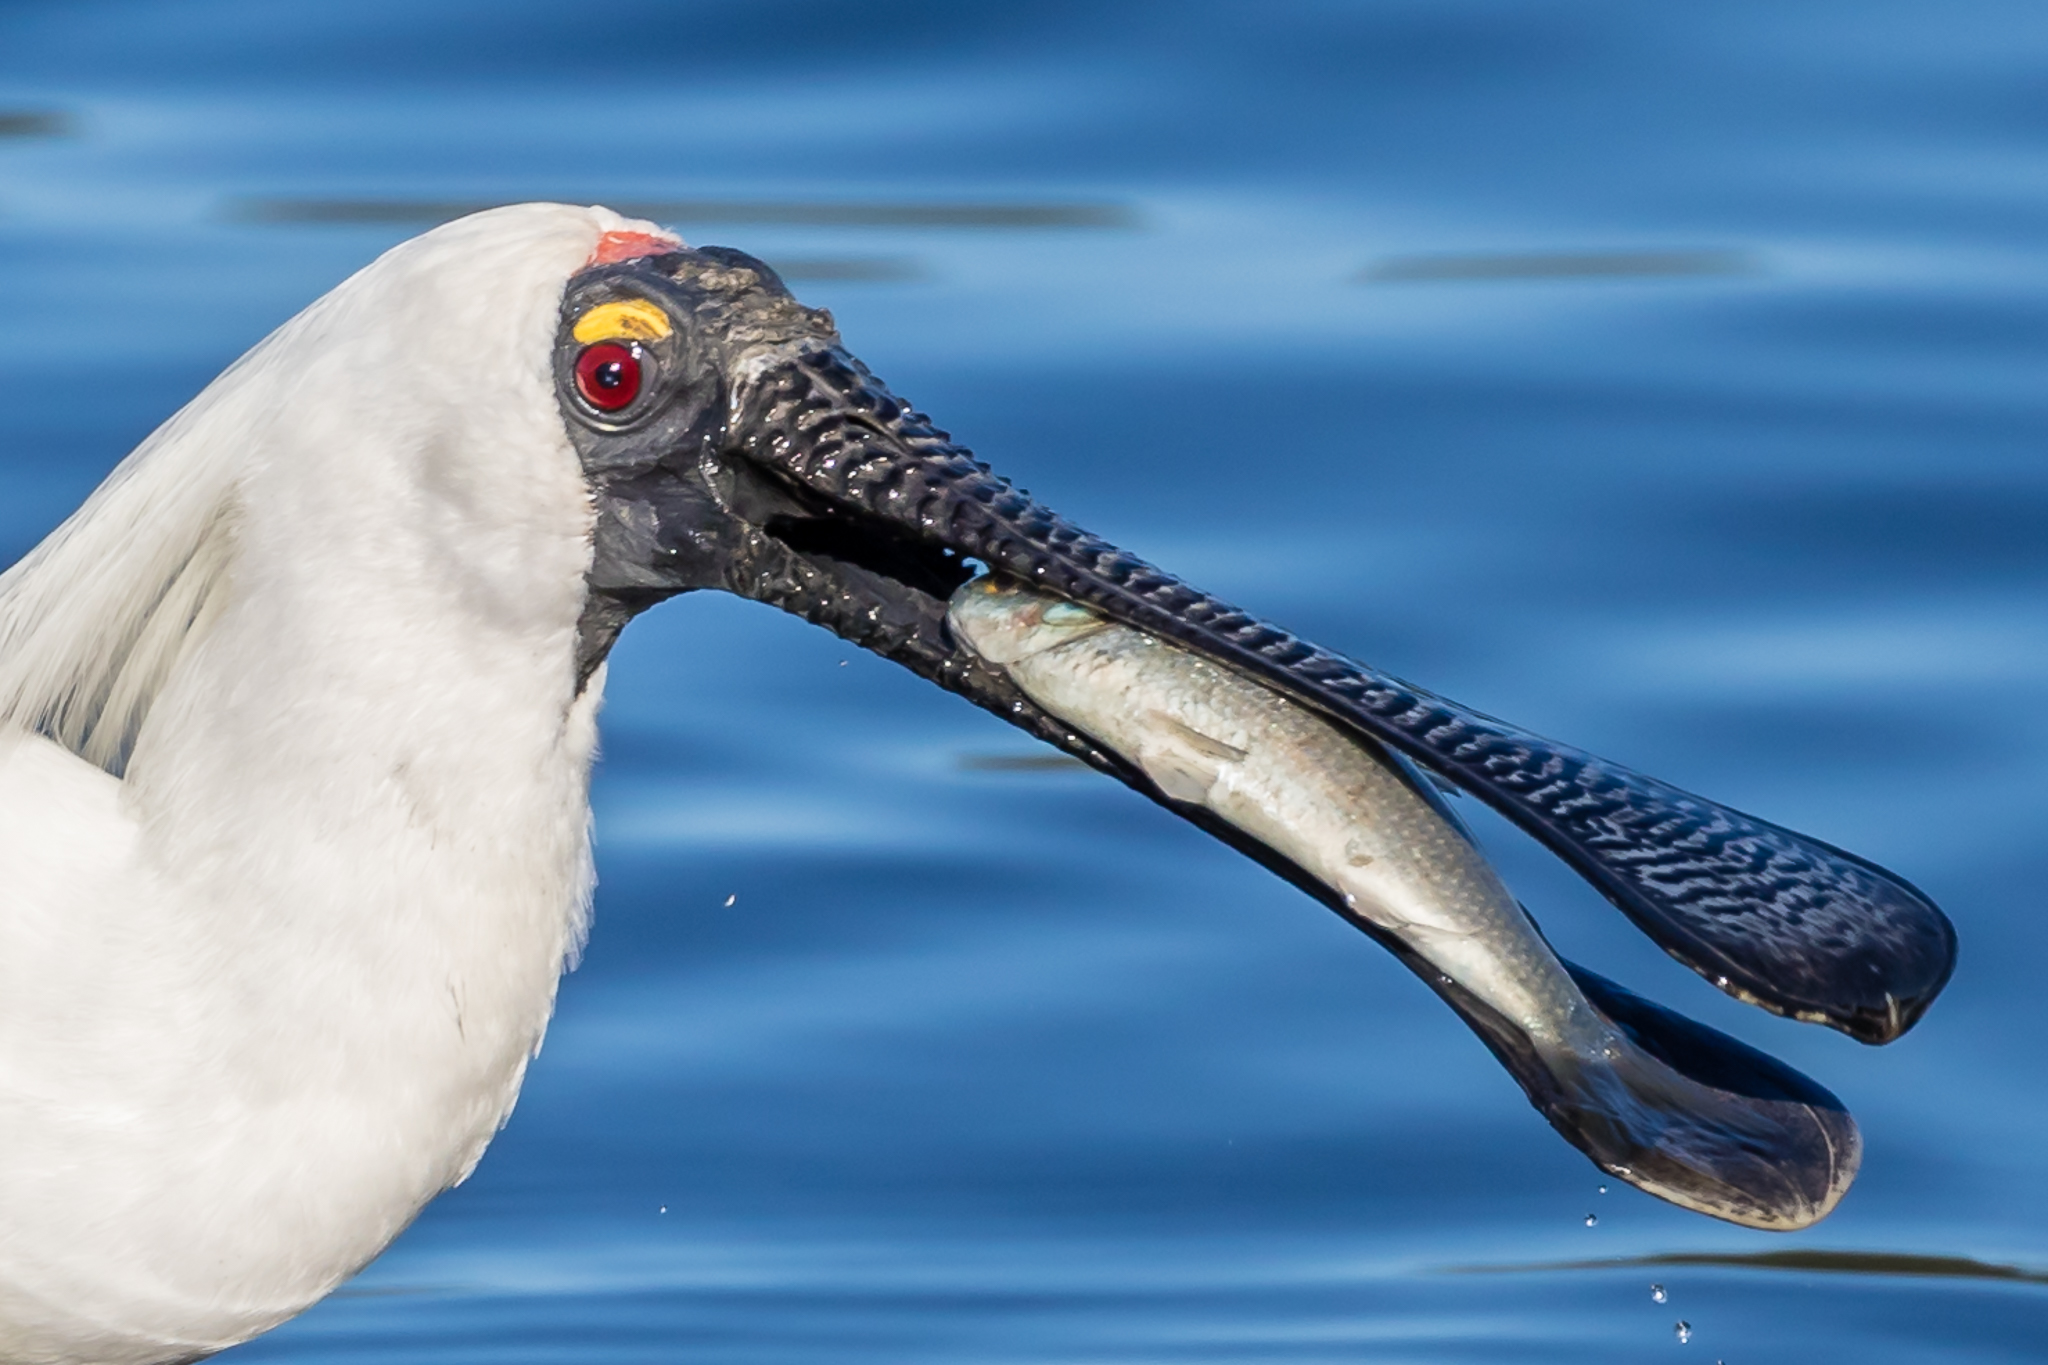 Expect the unexpected. If you go to Sydney's Olympic Park you might see this Royal Spoonbill feeding!